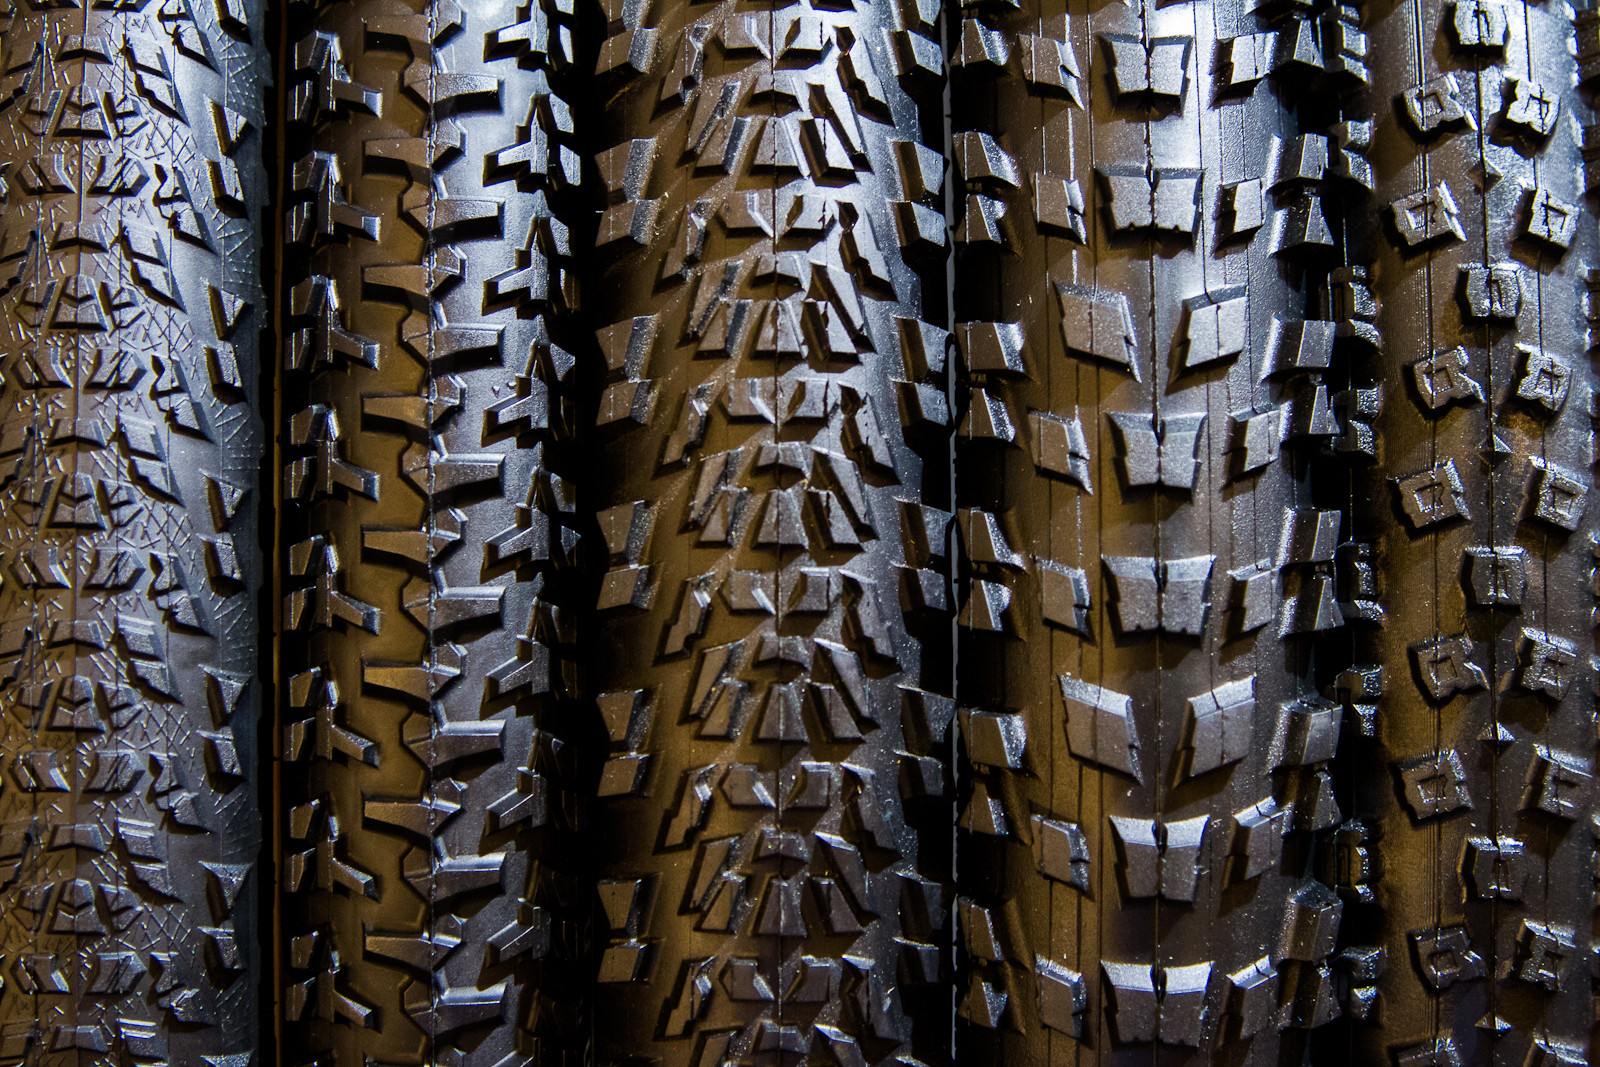 650b Wheels To Take Over in 2014? - 2013 and 2014 Products from Taichung Bike Week - Mountain Biking Pictures - Vital MTB